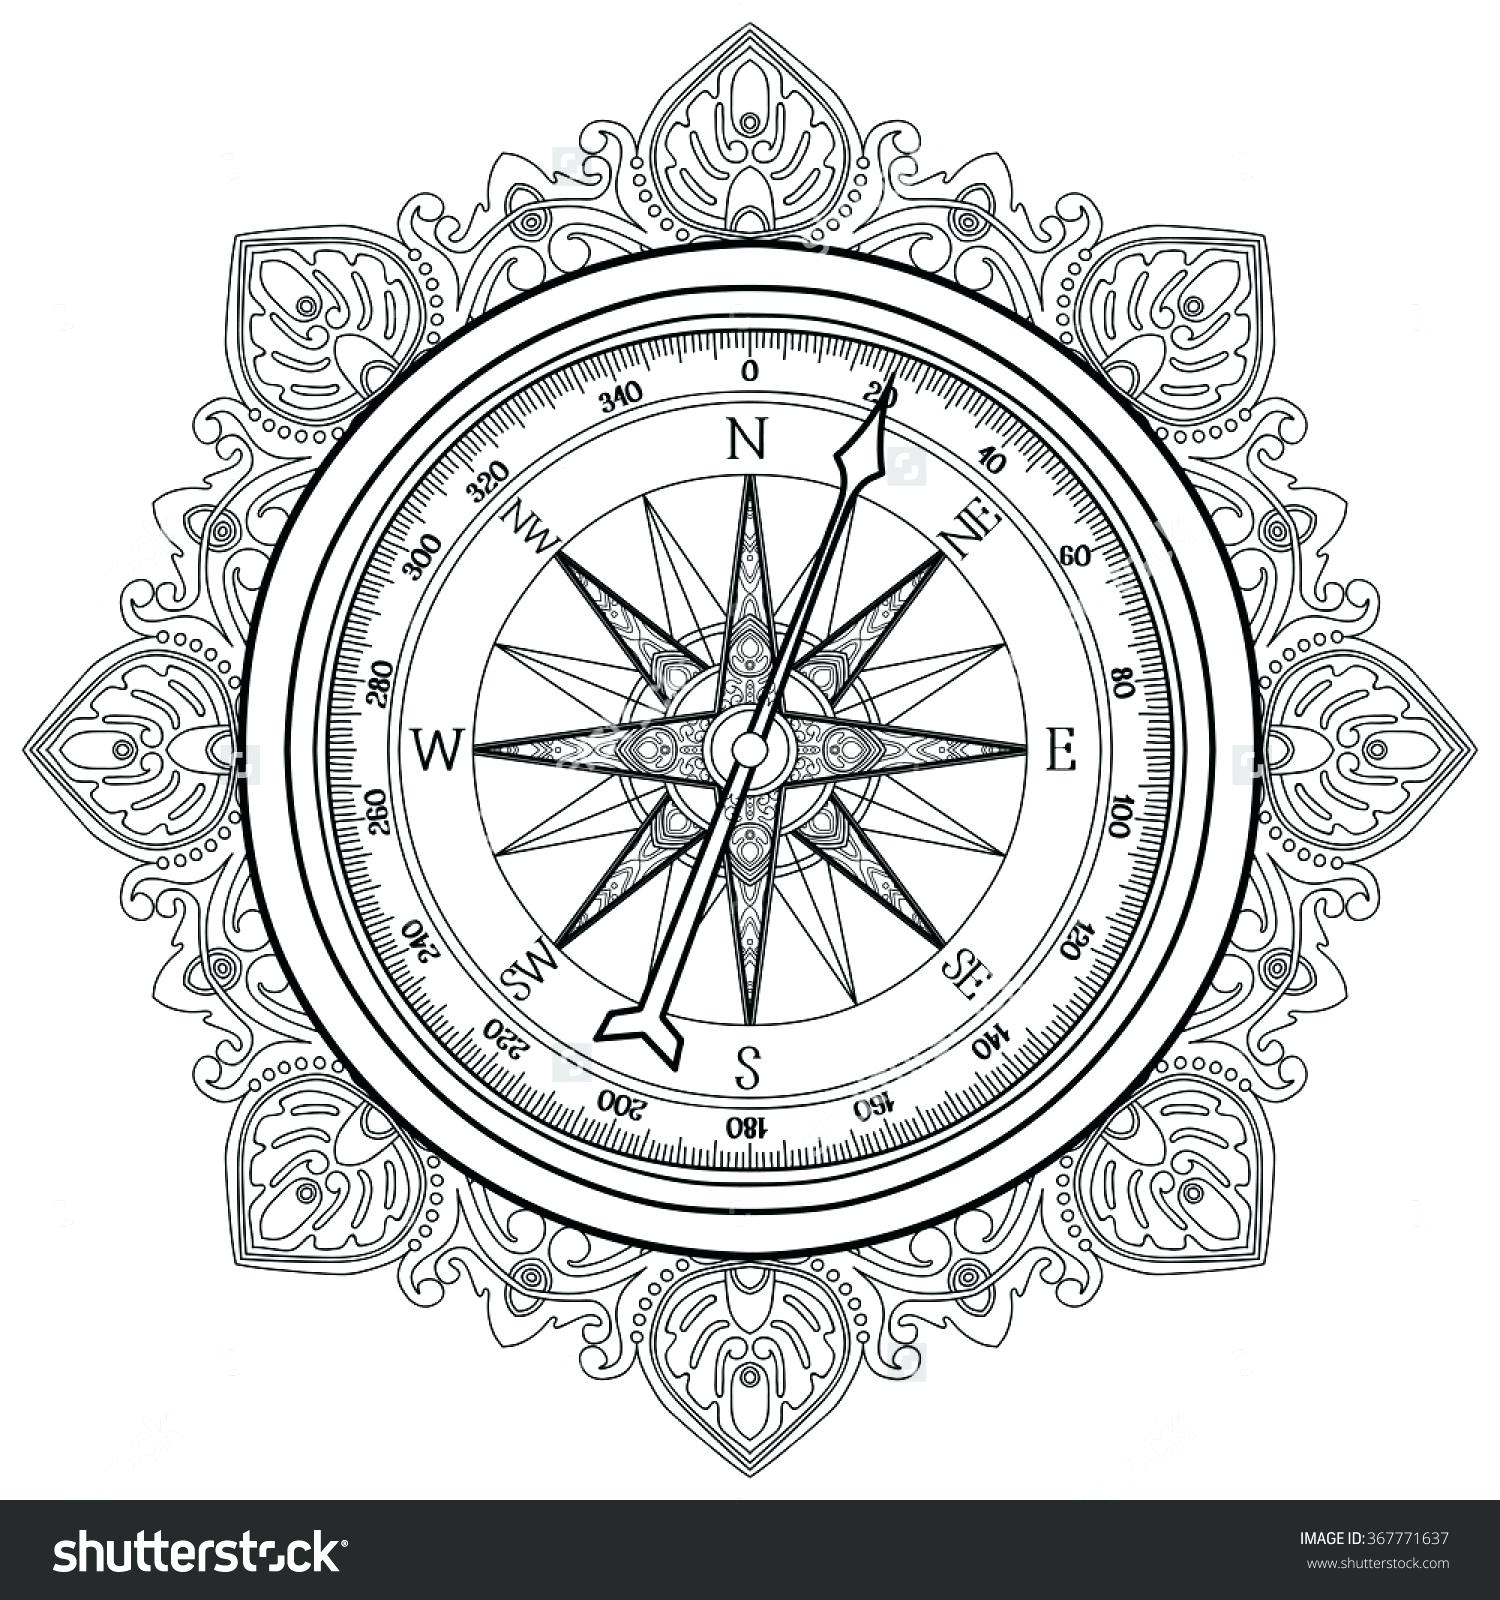 1500x1600 Coloring Page Nautical Coloring Pages. Nautical Themed Coloring